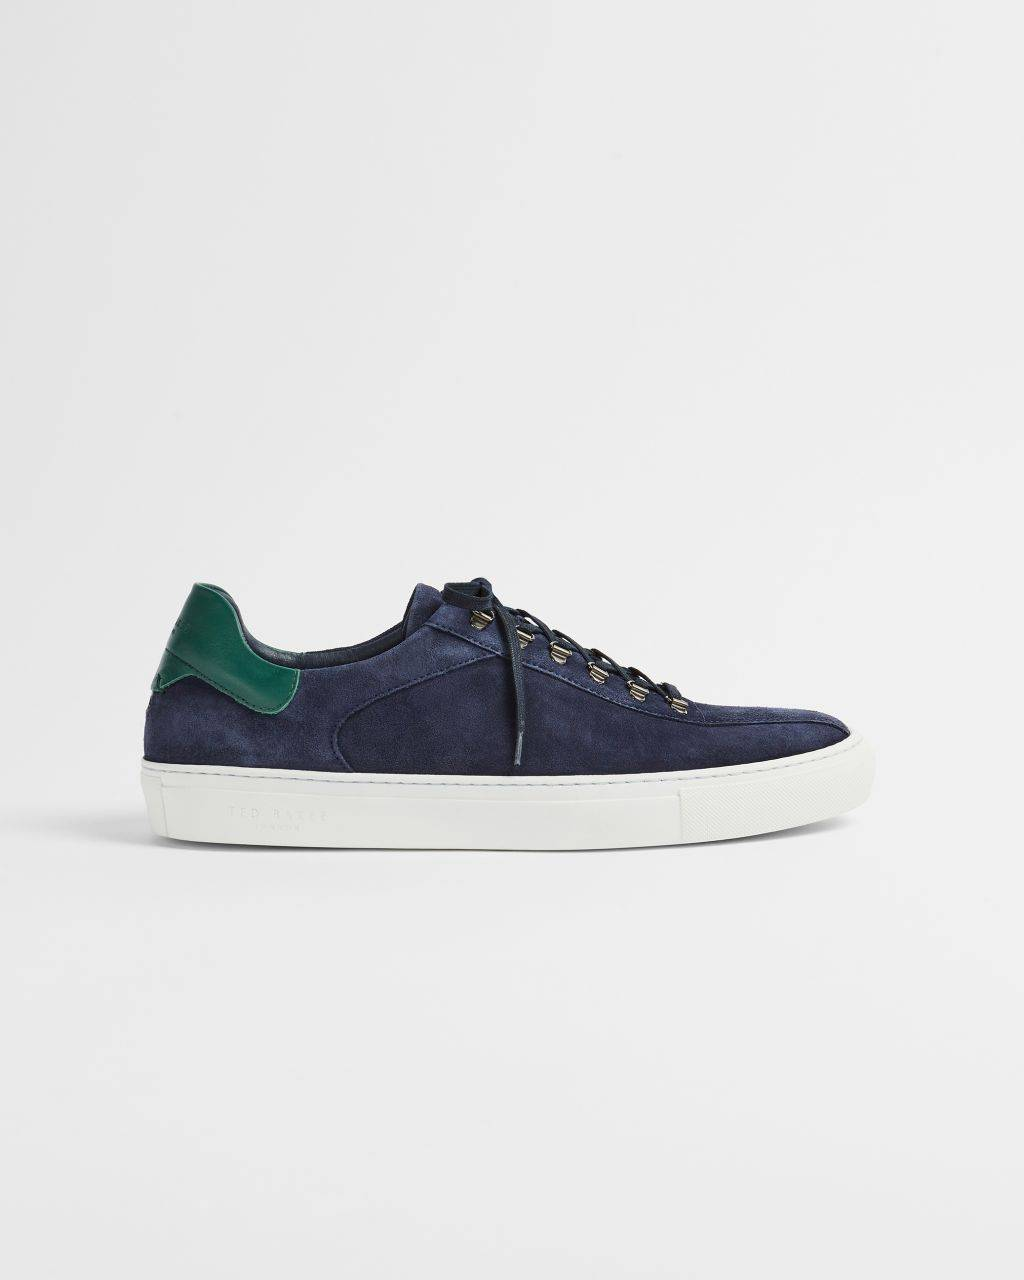 Ted Baker Hiker Lace Suede Trainers  - Navy - Size: UK 9 (EU 43)